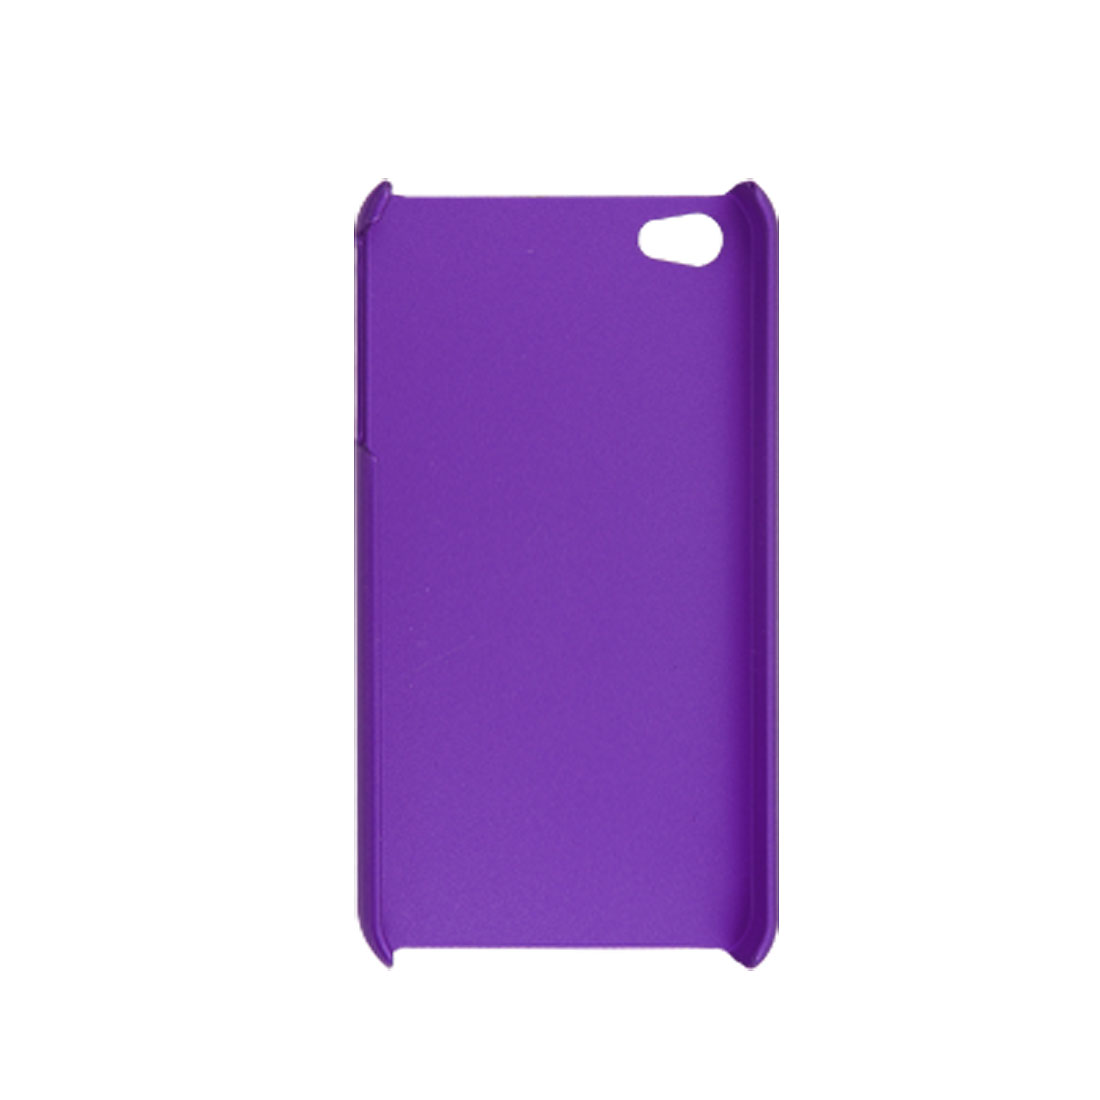 Purple Hard Plastic Case + Screen Guard for iPhone 4 4G